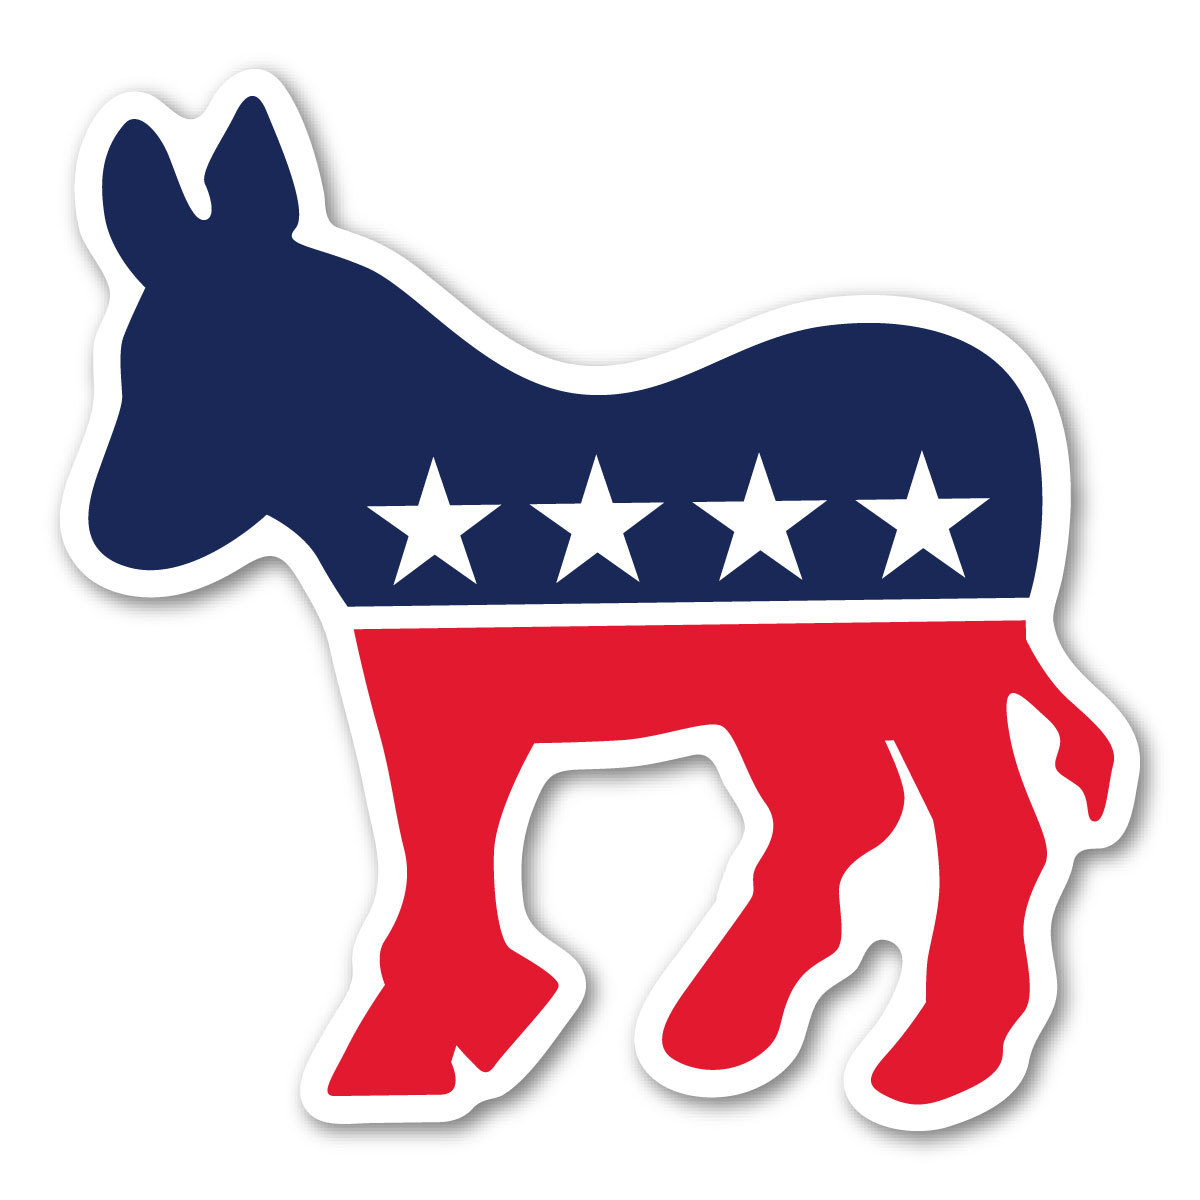 Democratic donkey decal . Democracy clipart political campaign